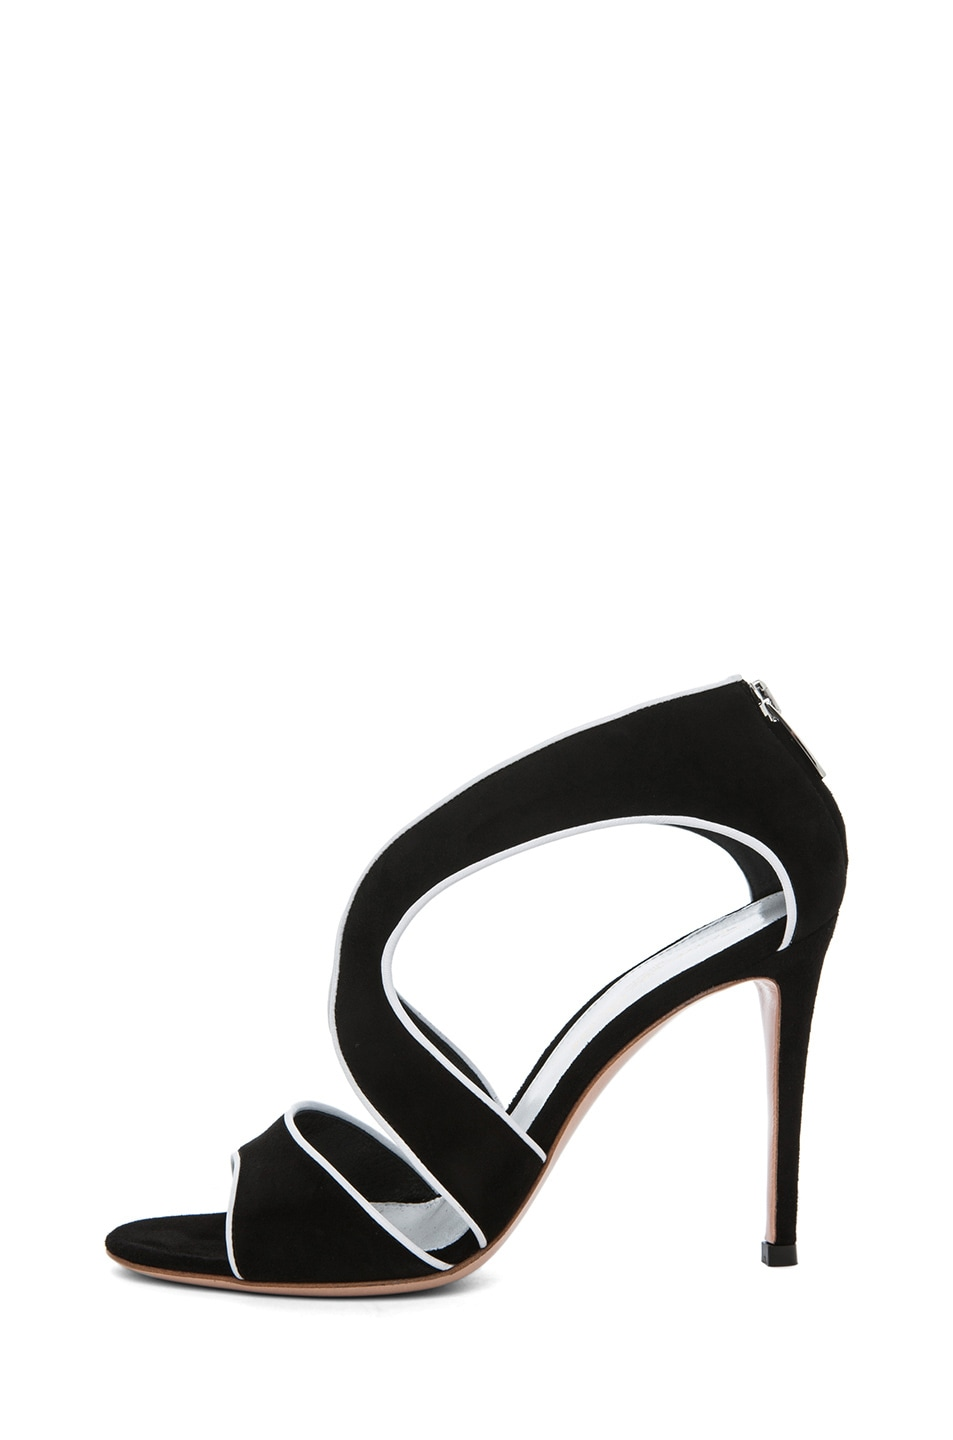 Image 1 of Gianvito Rossi Suede White Contrast Heel in Black